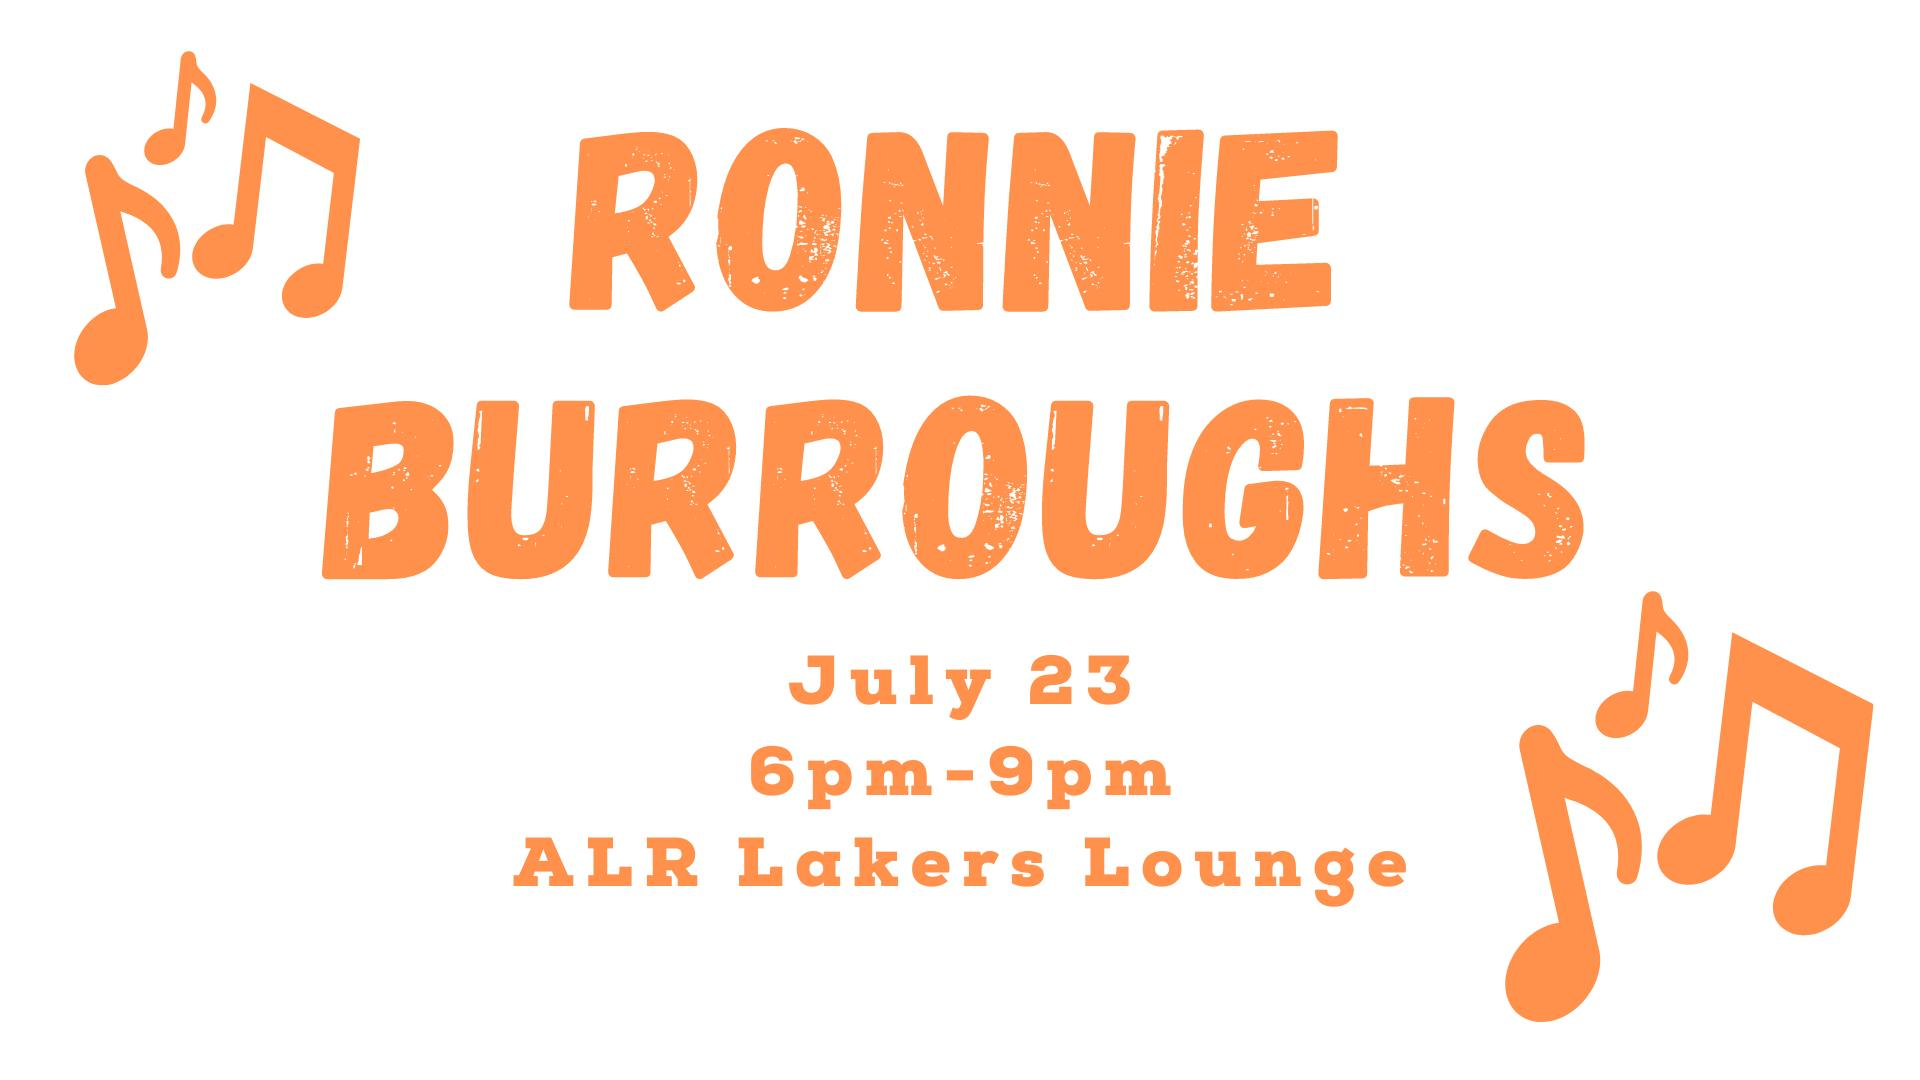 Ronnie Burroughs in the ALR Lakers Lounge